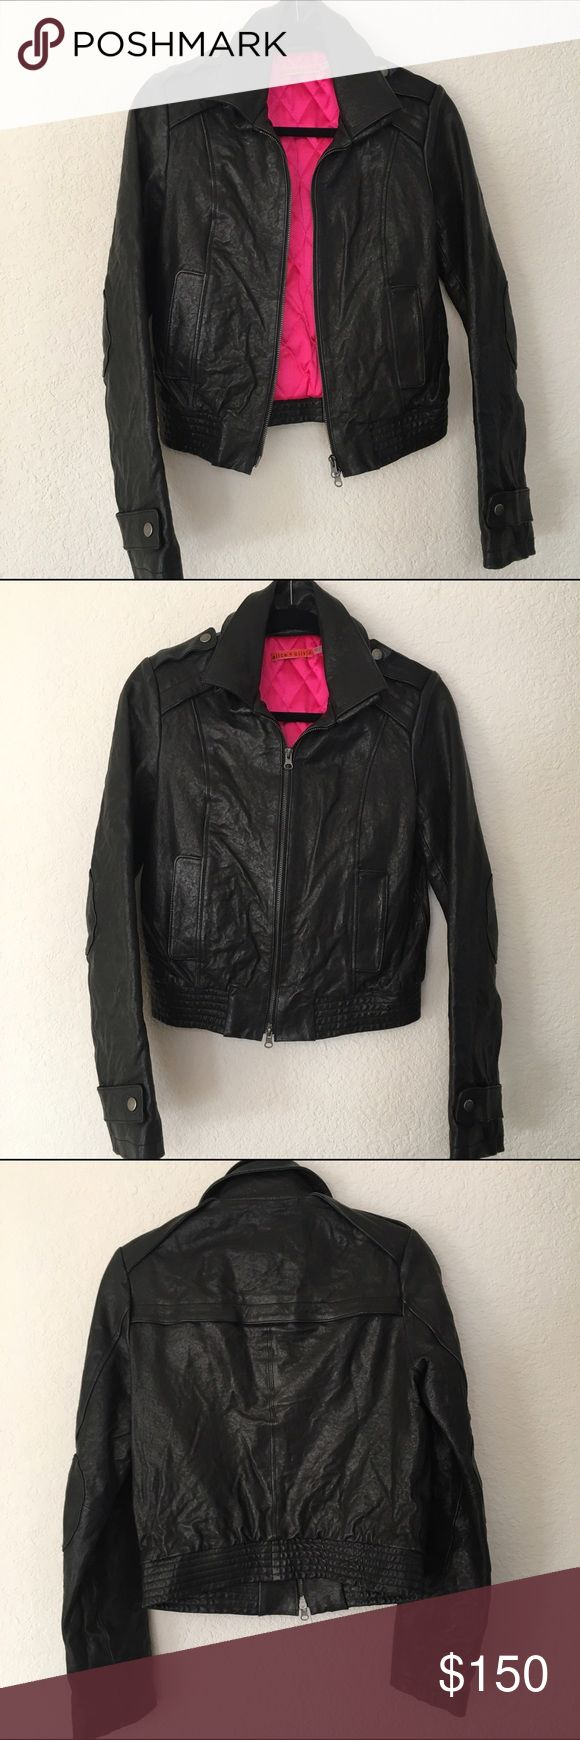 Alice + Olivia Motorcycle Jacket leather Beautiful Alice + Olivia leather Motorcycle jacket. Cute pink satin lining. Only worn a handful of times. No flaws. I live in Southern California, and it never gets cold enough for me to wear this. Alice + Olivia Jackets & Coats